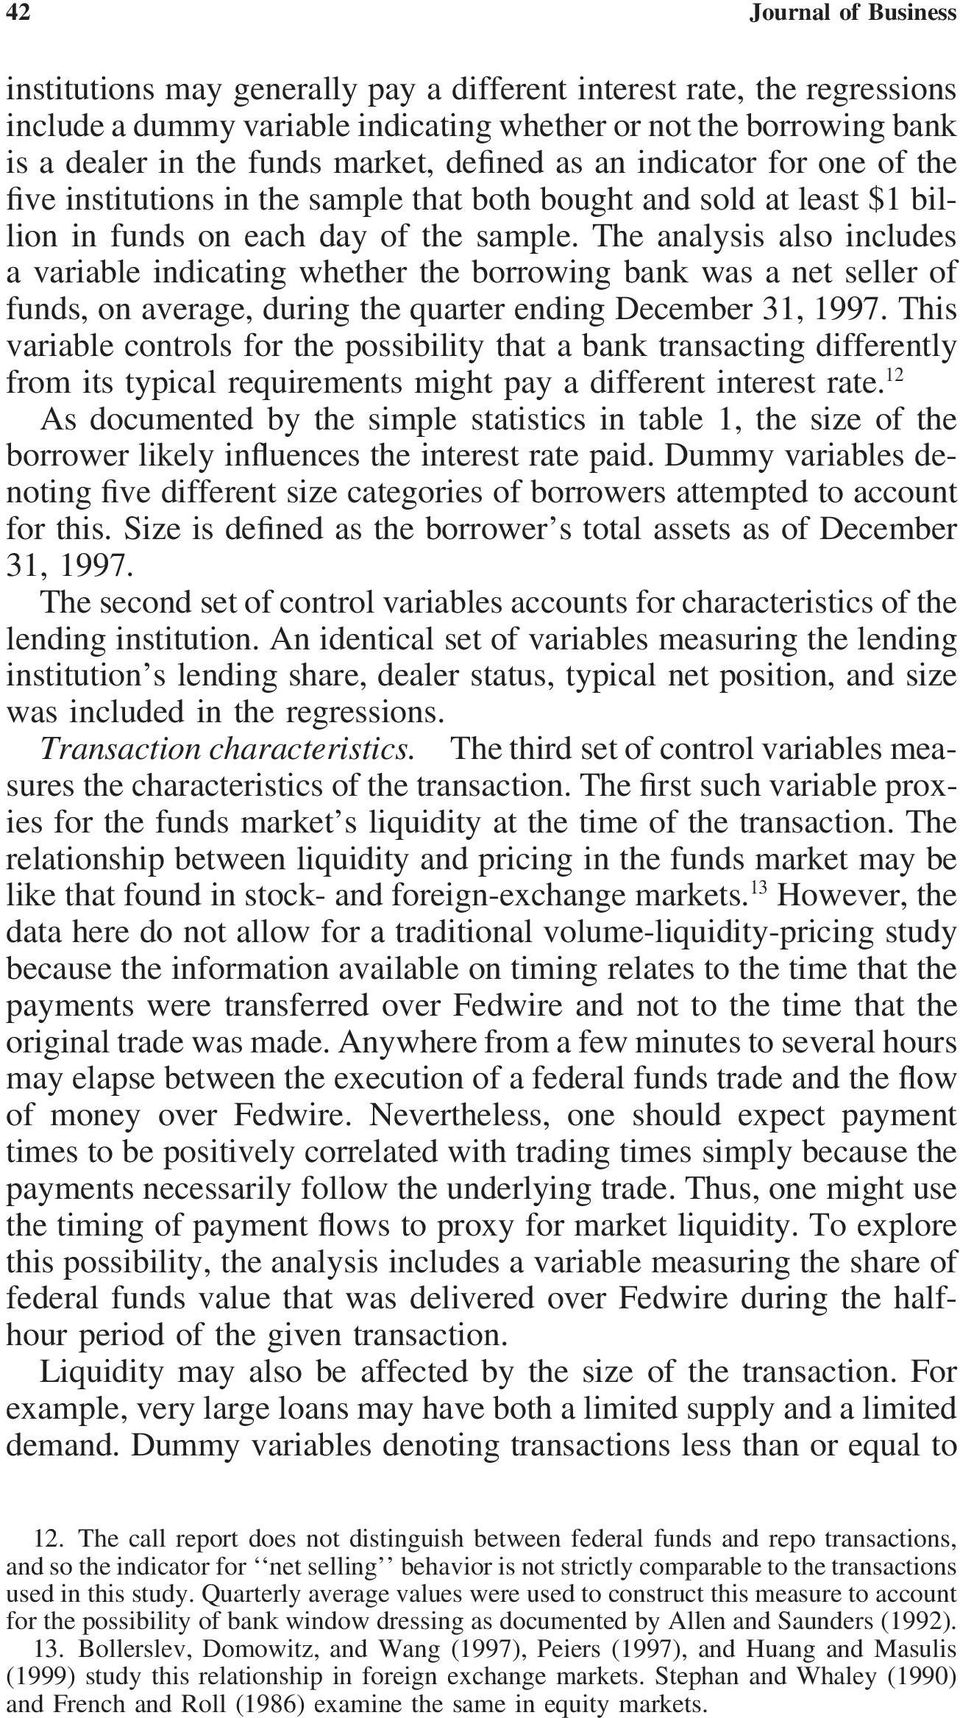 The analysis also includes a variable indicating whether the borrowing bank was a net seller of funds, on average, during the quarter ending December 31, 1997.